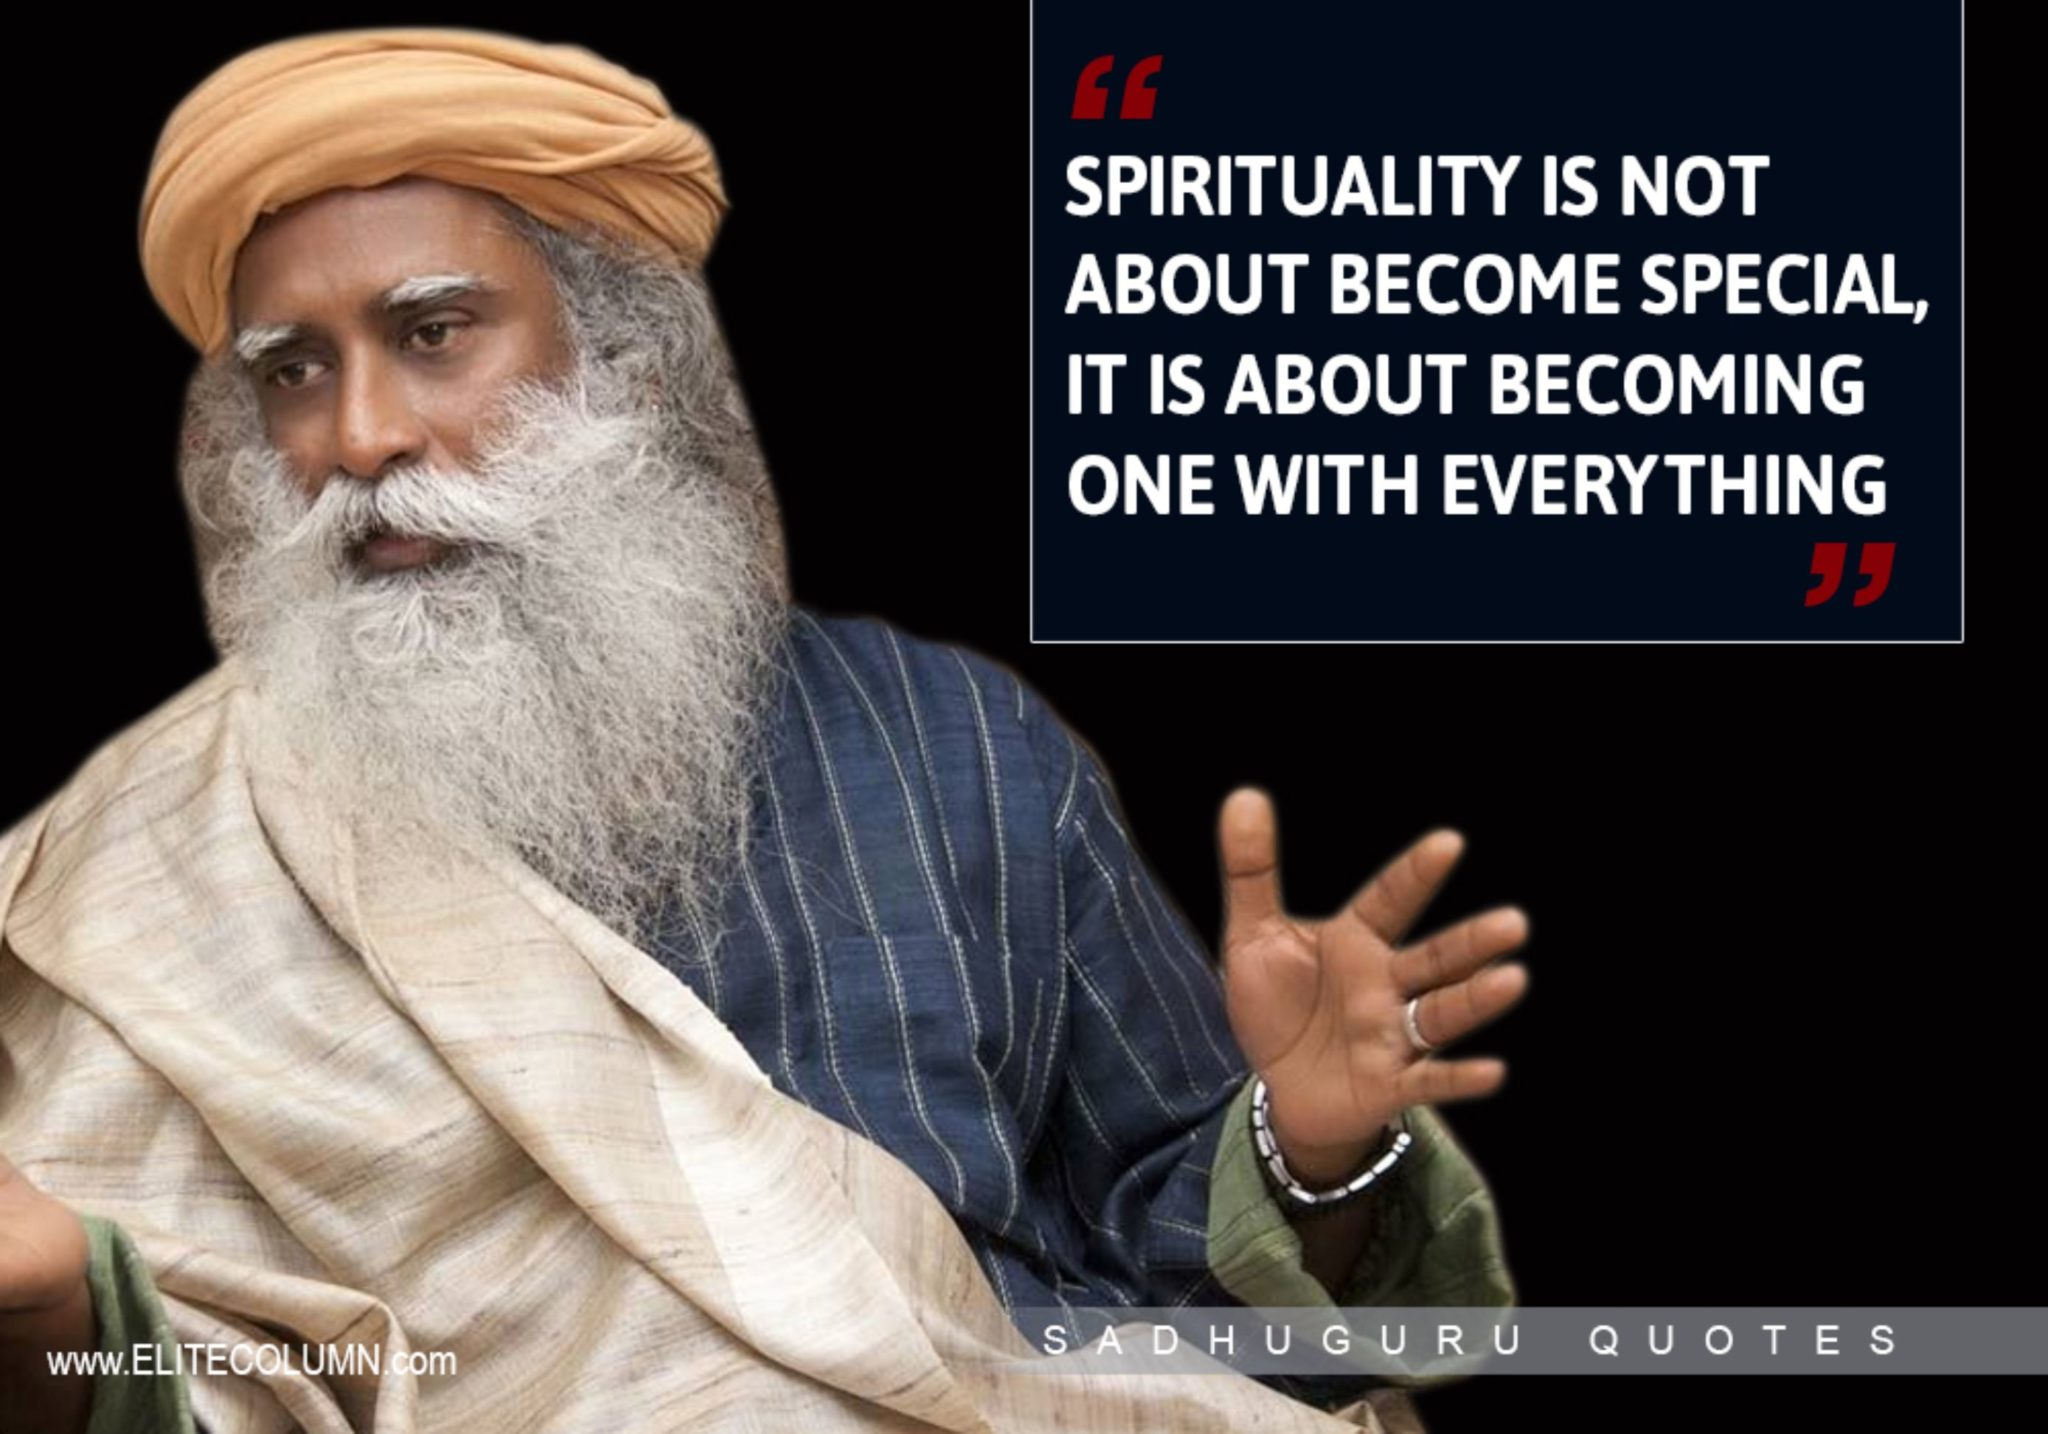 12 Best Life Quotes From Sadhguru Jaggi Vasudev  EliteColumn